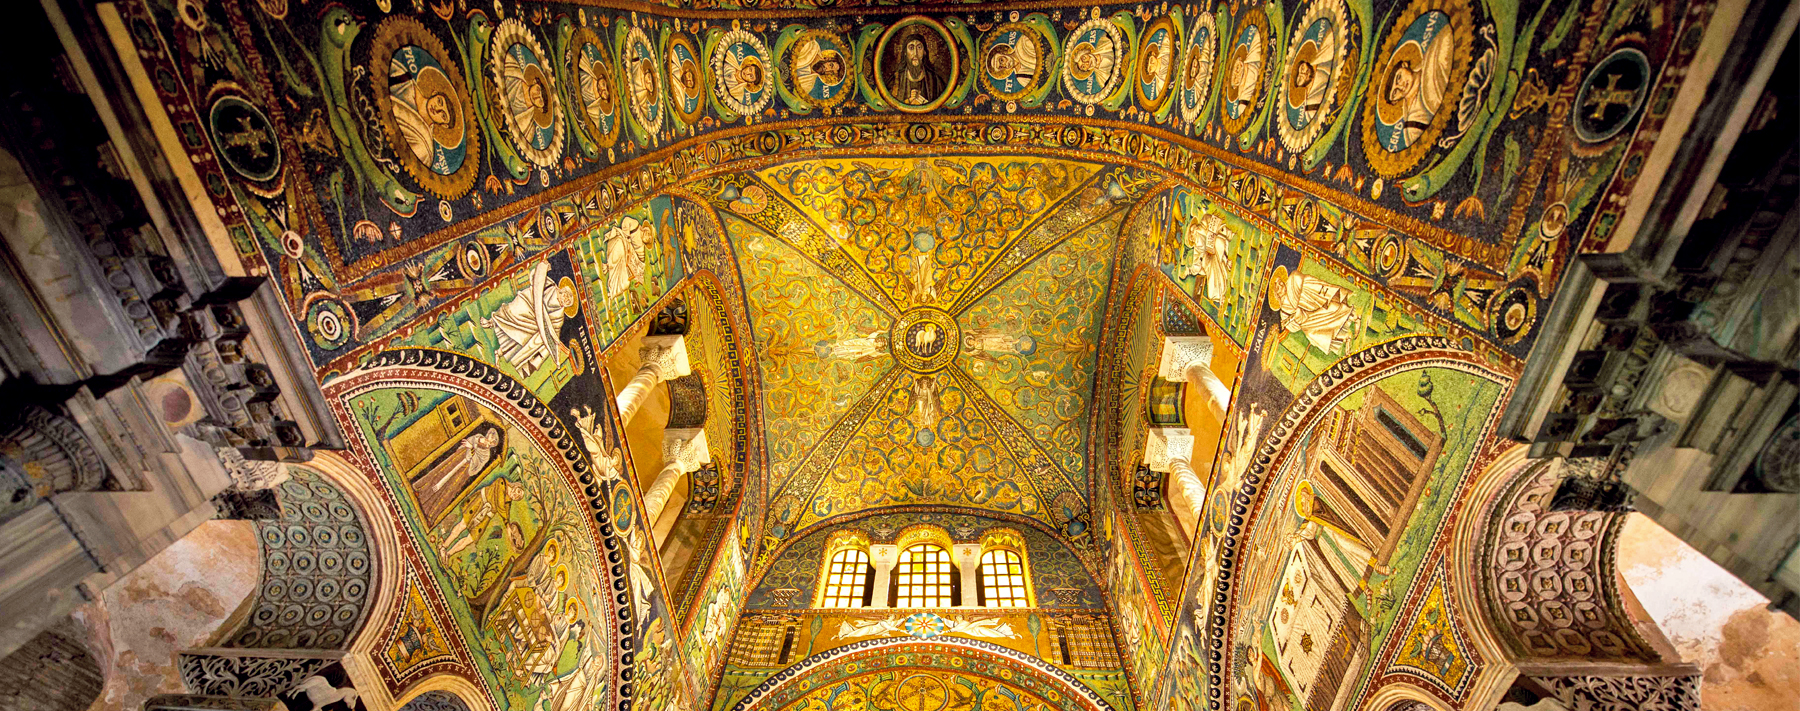 Churches and Cathedrals to visit in Emilia Romagna